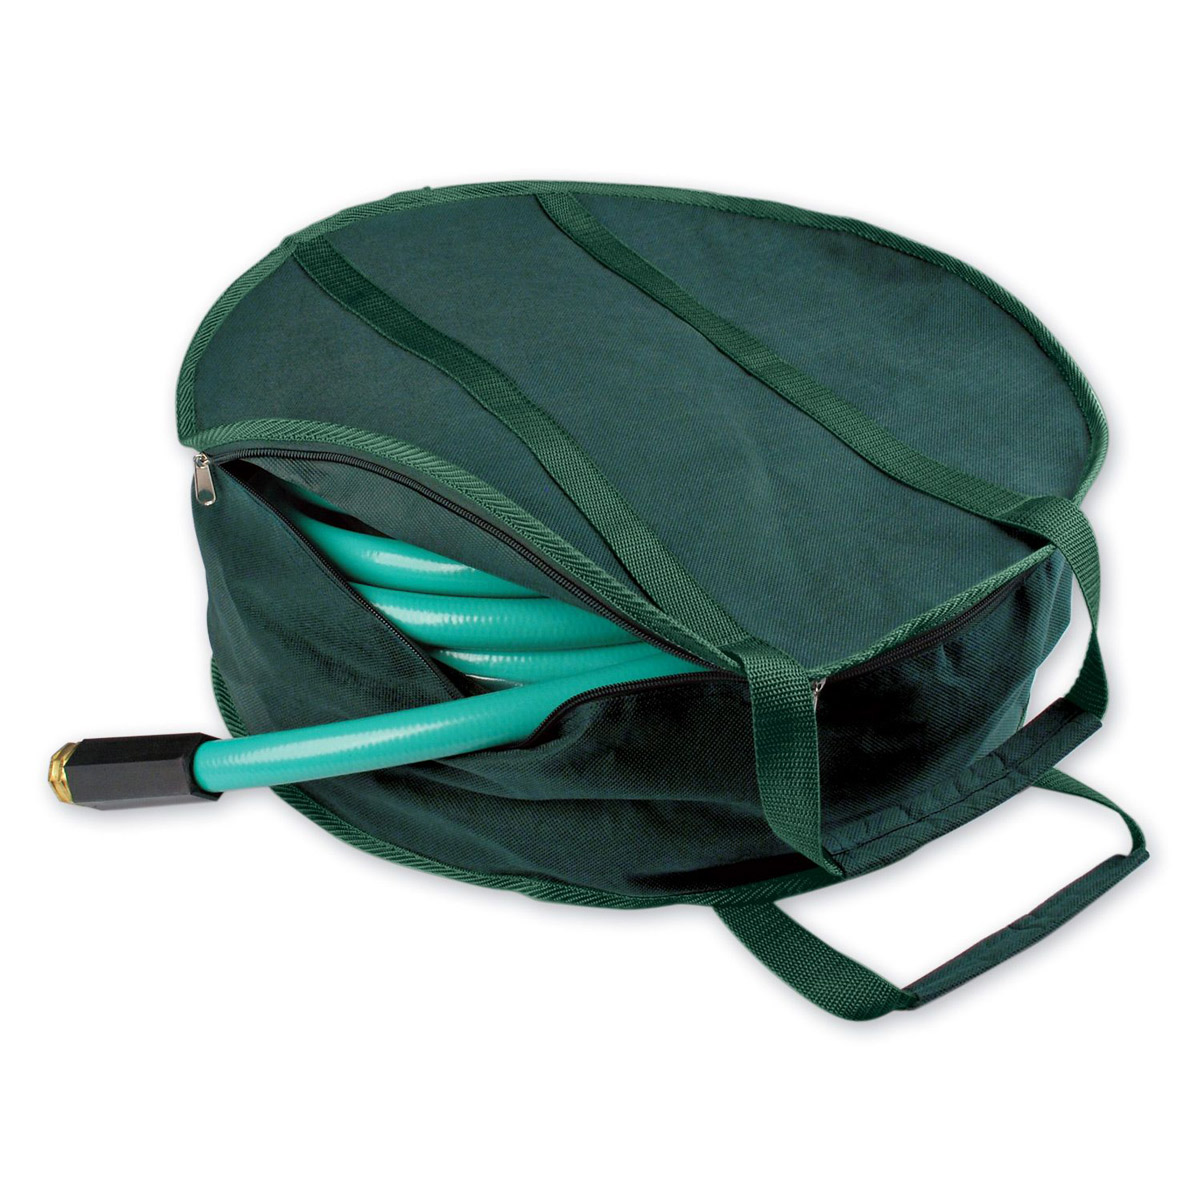 Garden Hose Storage Bag The Green Head